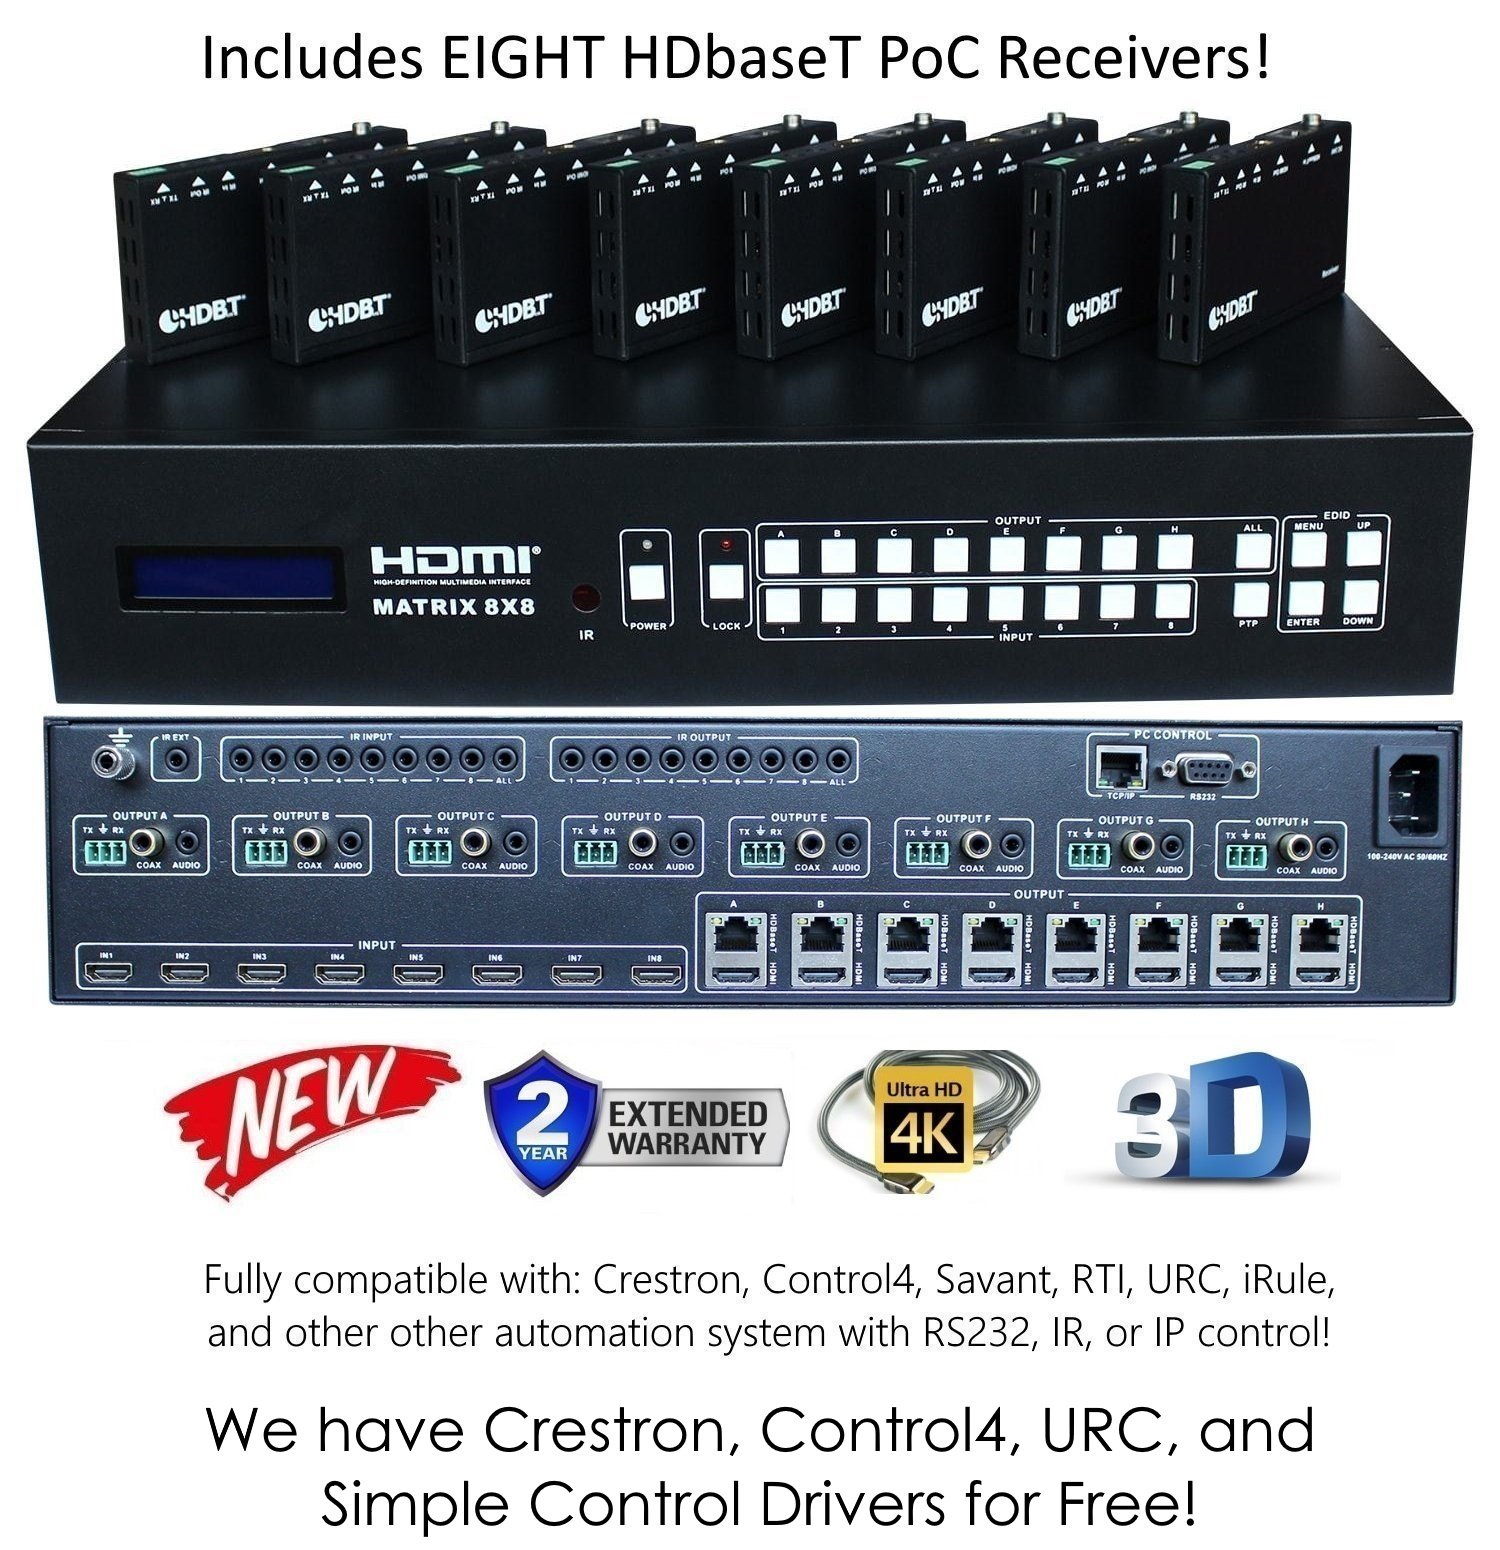 8x16 HDbaseT 4K MATRIX SWITCHER 8x8 16x16 with 8 Receivers (CAT5e or CAT6) HDMI HDCP2.2 HDTV ROUTING SELECTOR SPDIF AUDIO CRESTRON CONTROL4 SAVANT HOME AUTOMATION 4K2K